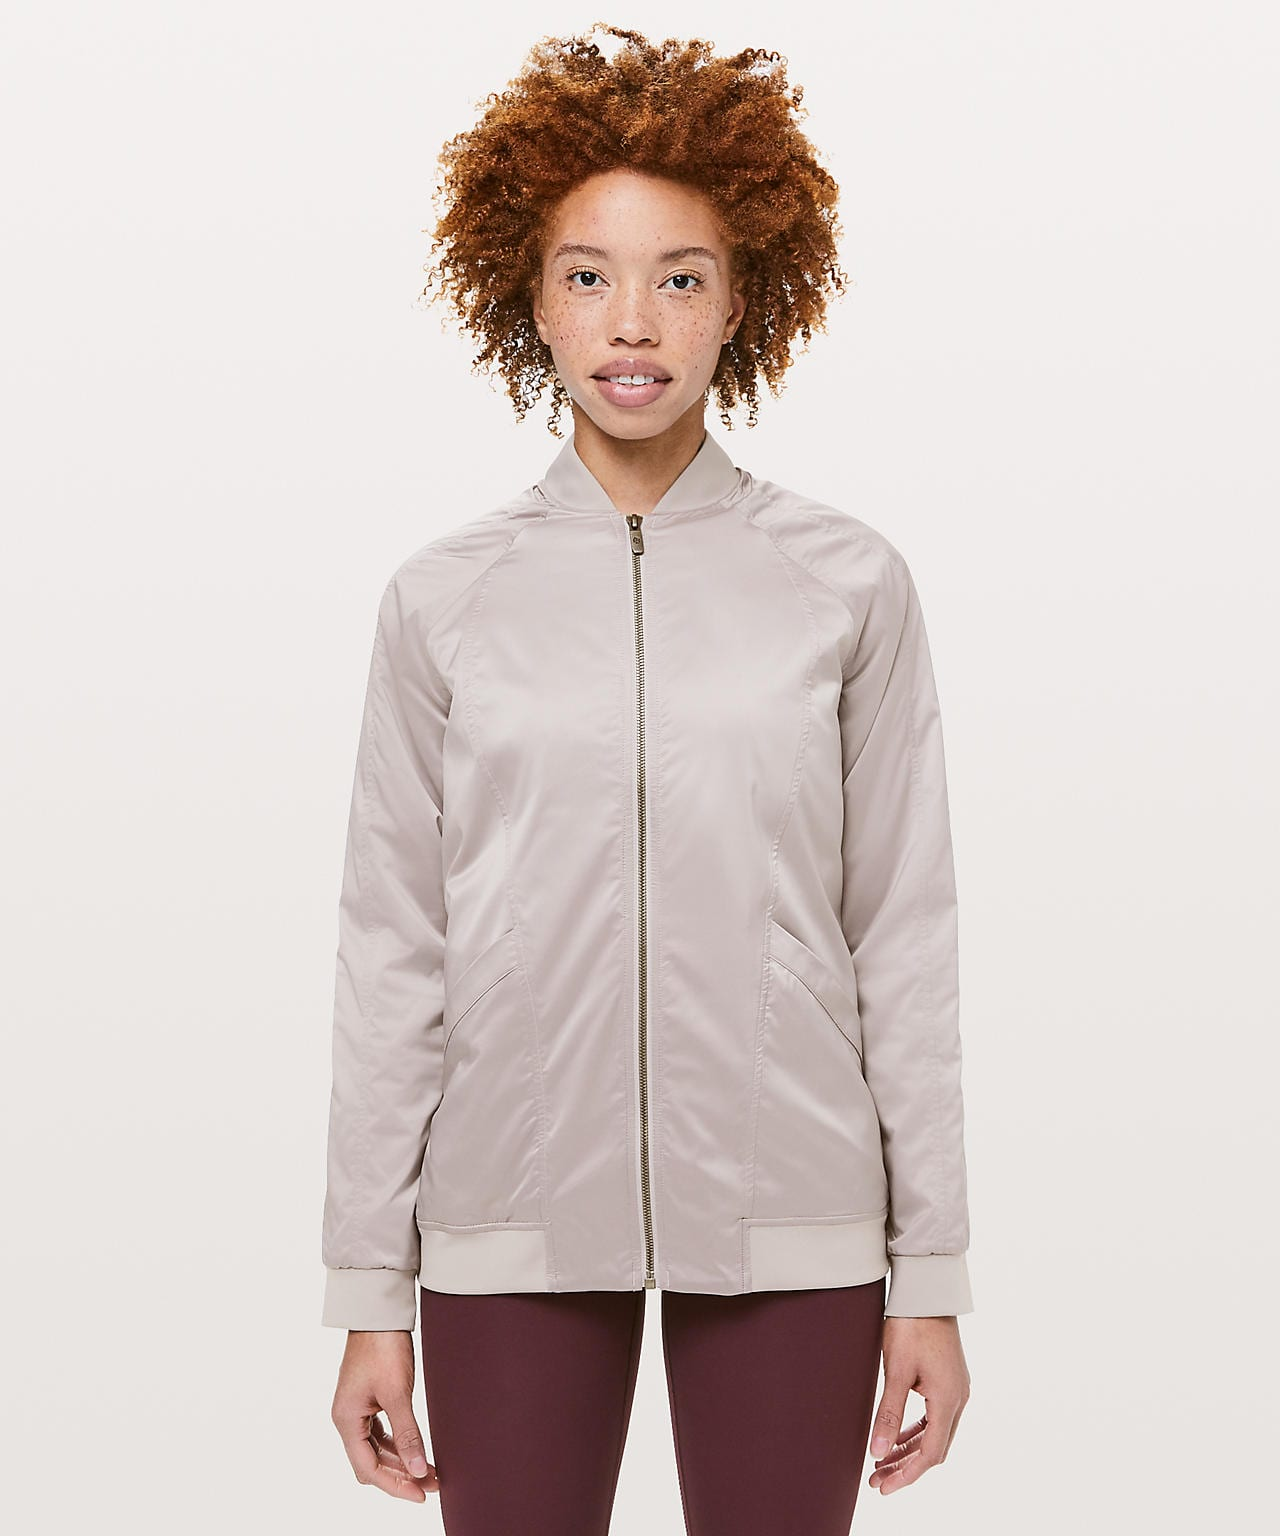 Trace Back Bomber Jacket